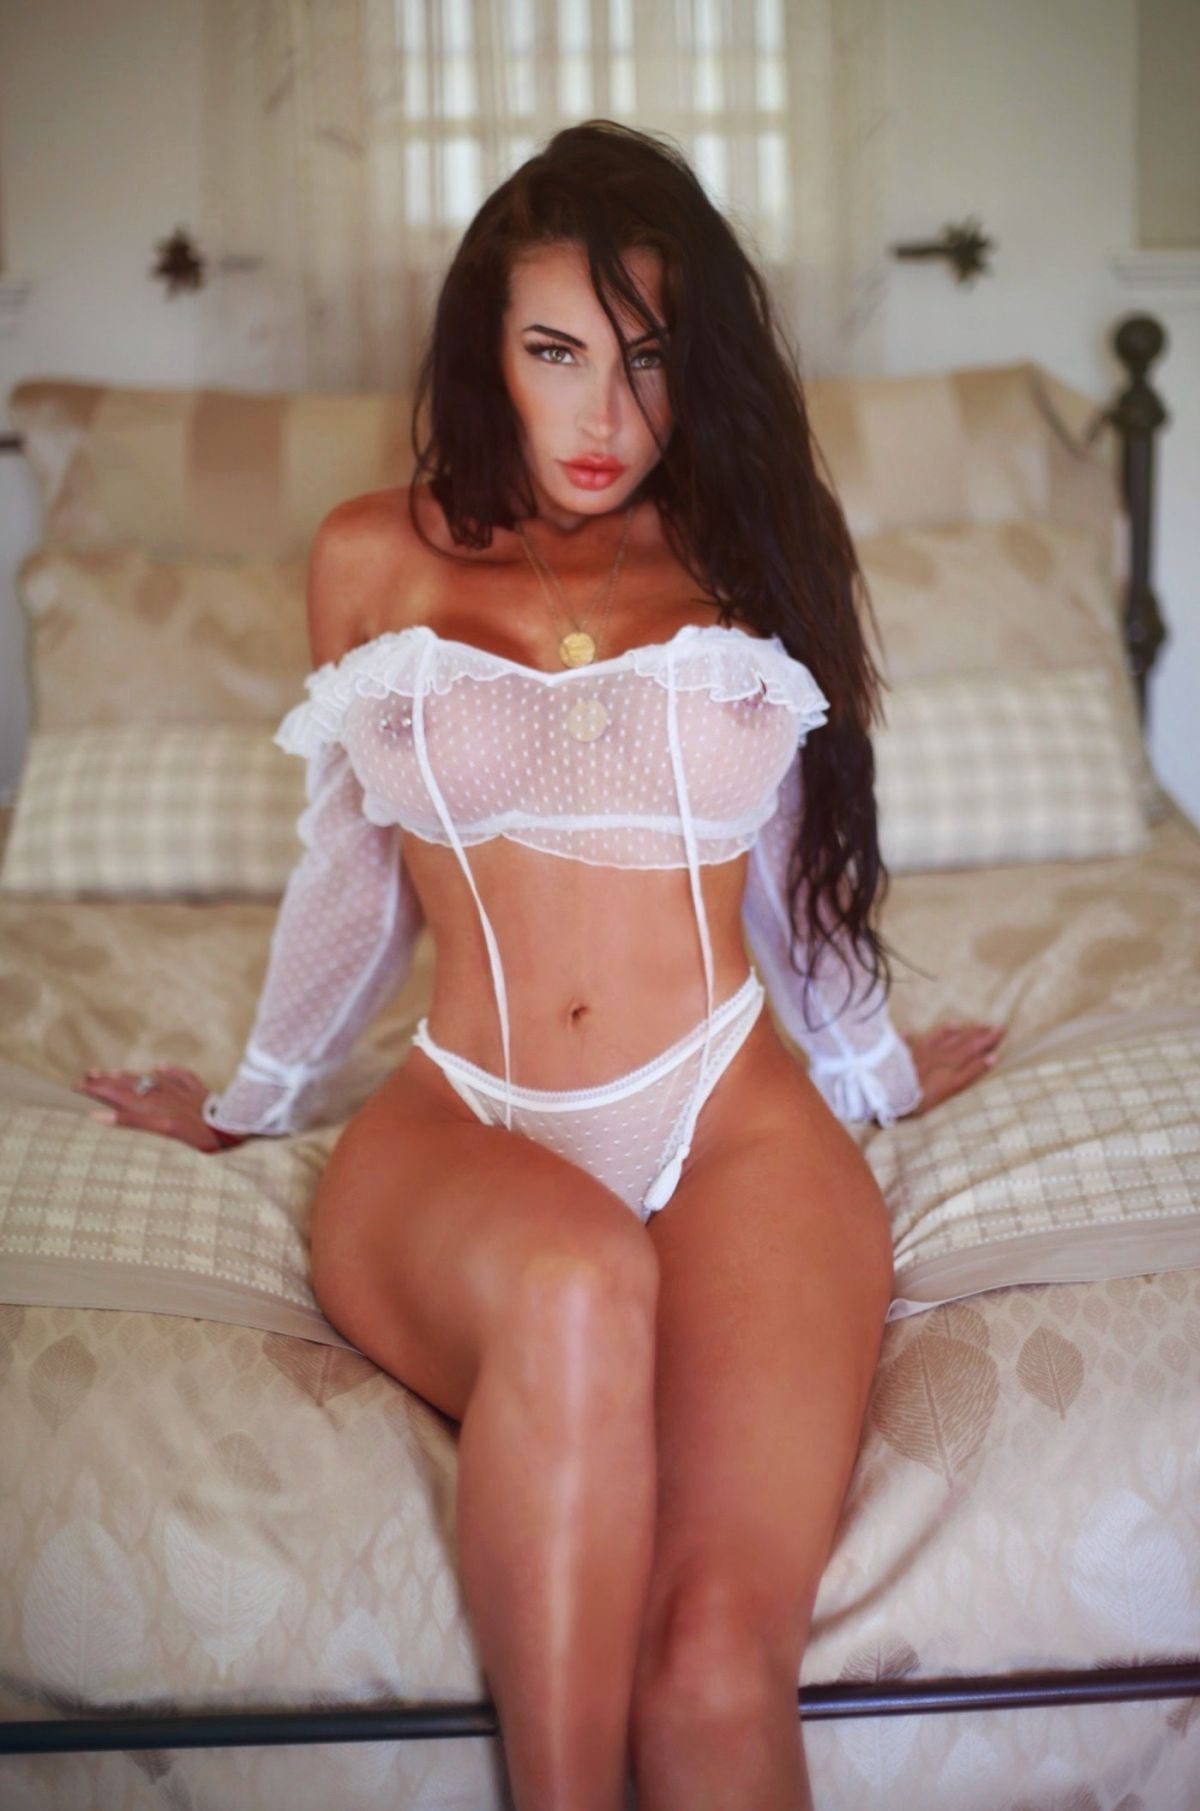 Free nudes of Aria London onlyfans leaked